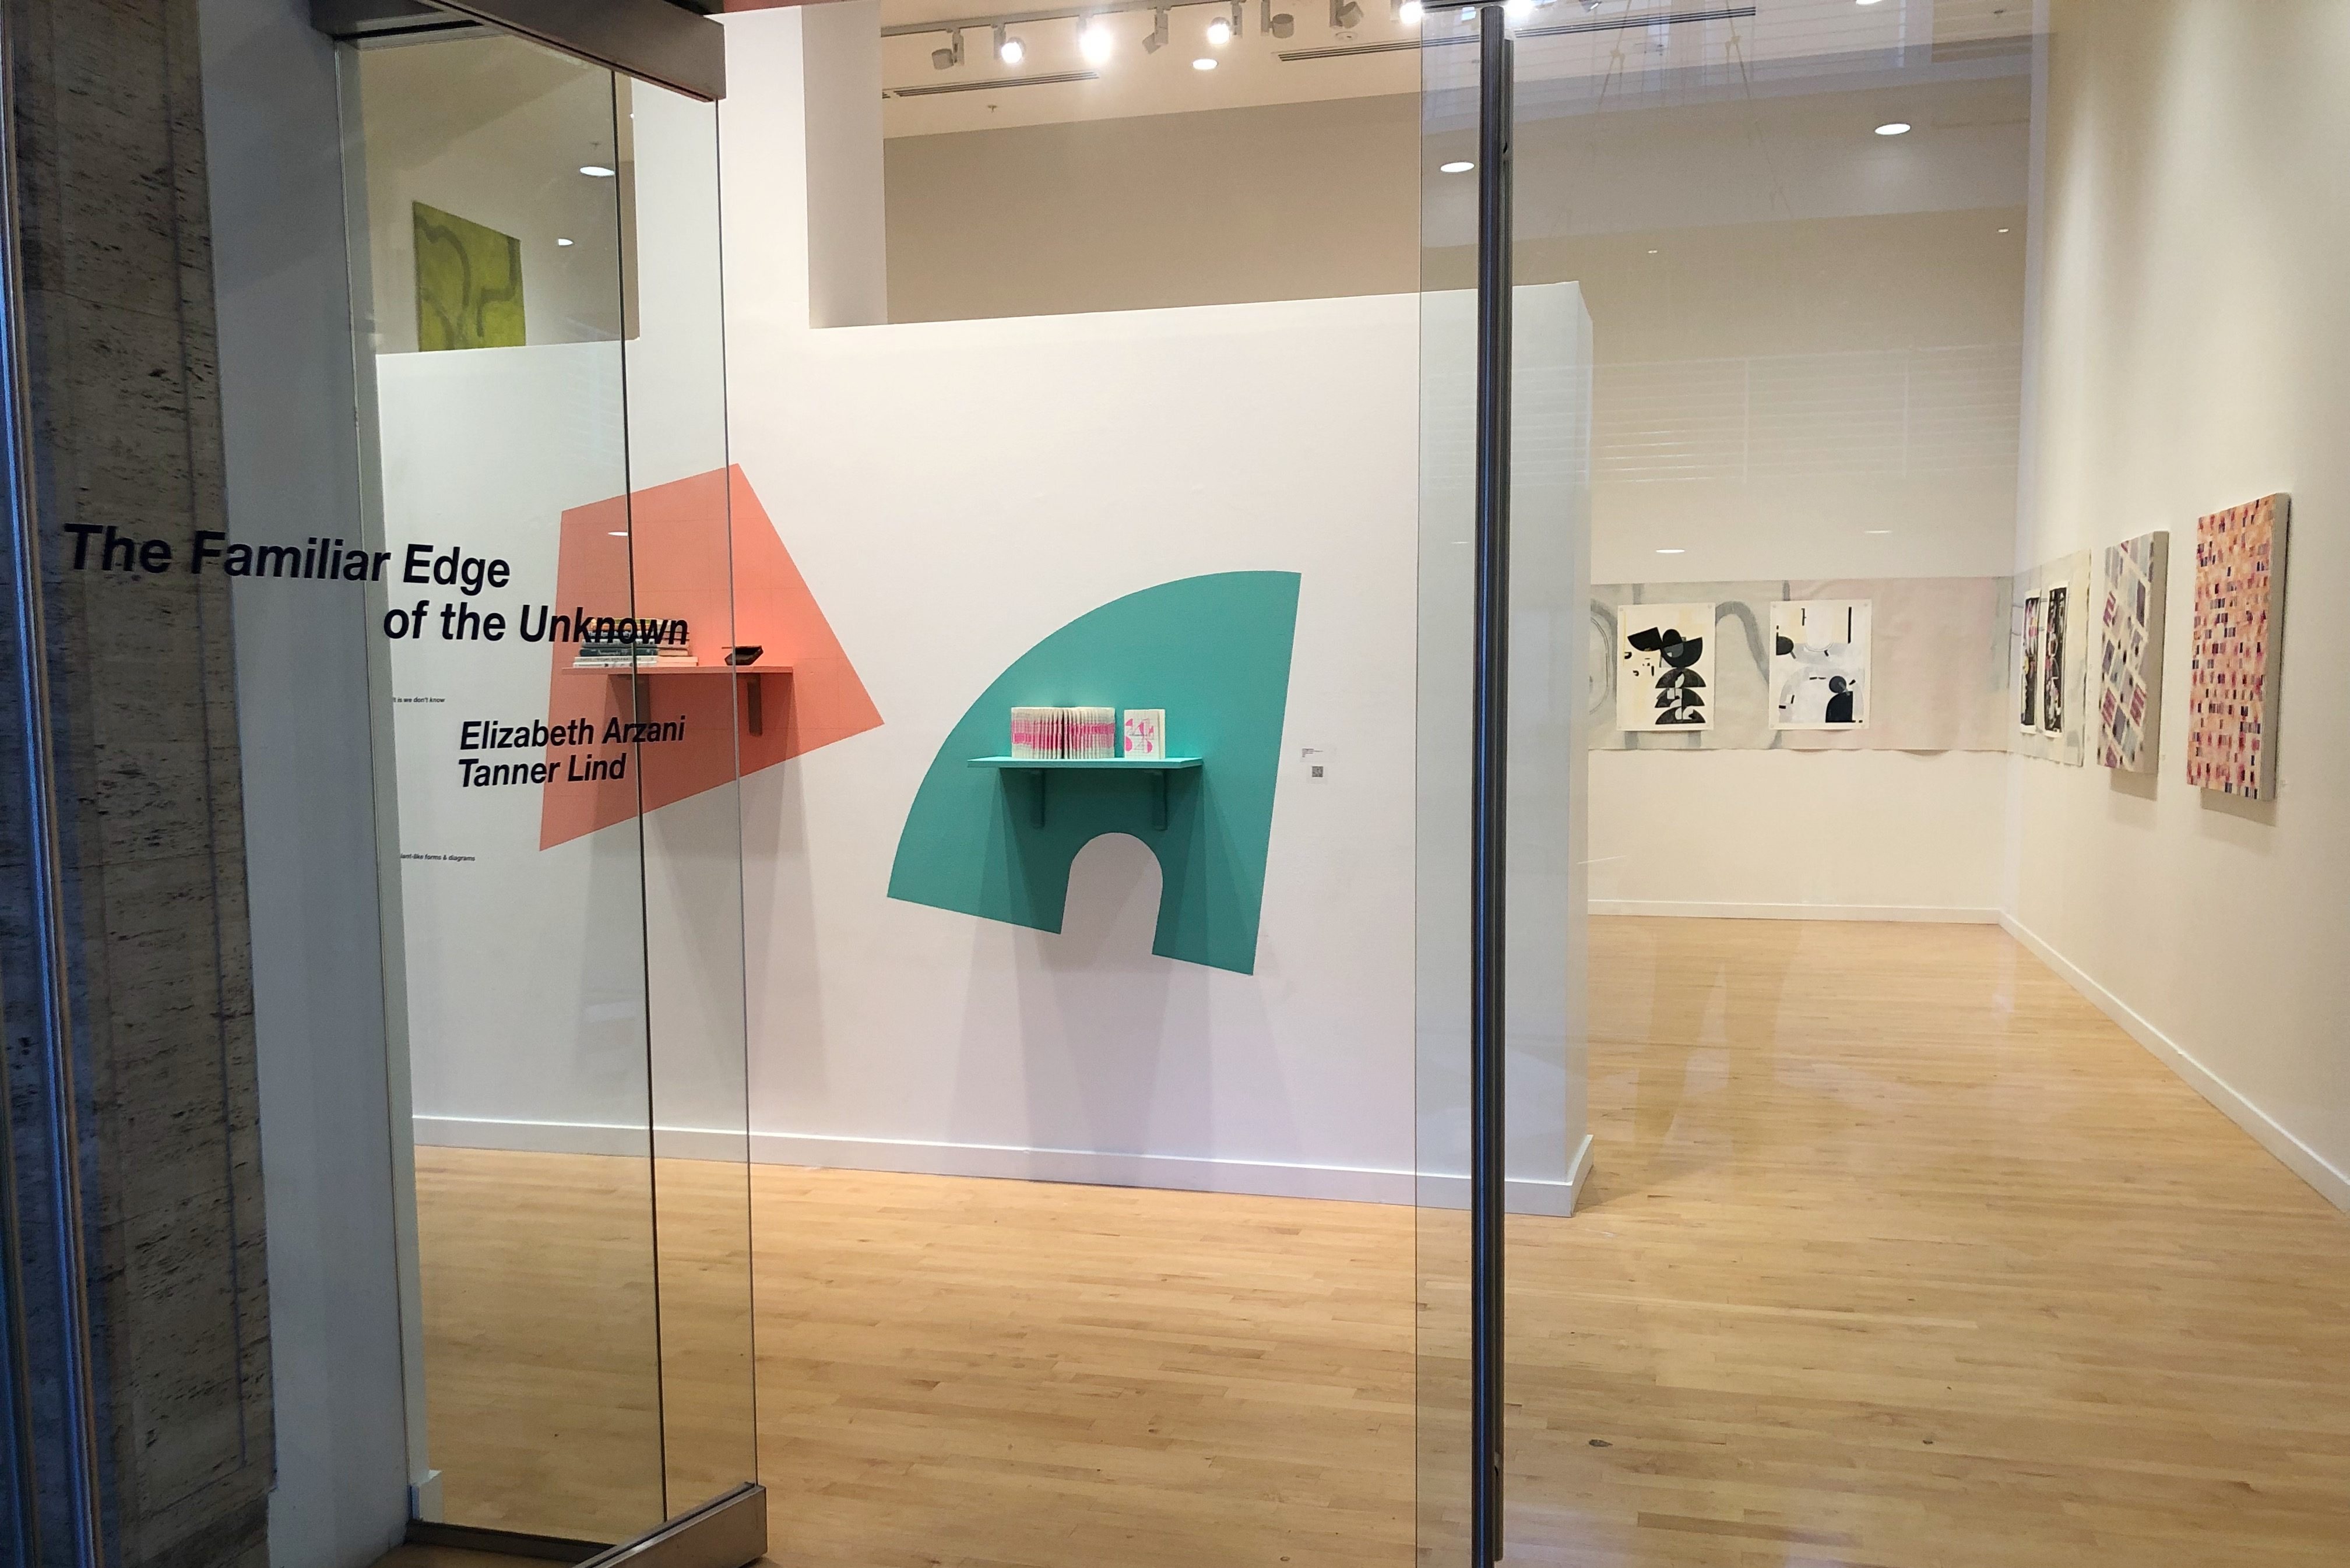 """A glass door, on which are written the words """"The Familiar Edge of the Unknown, Elizabeth Arzani, Tanner Lind,"""" opens into a gallery space with tall ceilings and light wood floors. Beyond the door, various pieces hang on a white wall; and in the middle of the room, shelves hang against soft pastel shapes."""